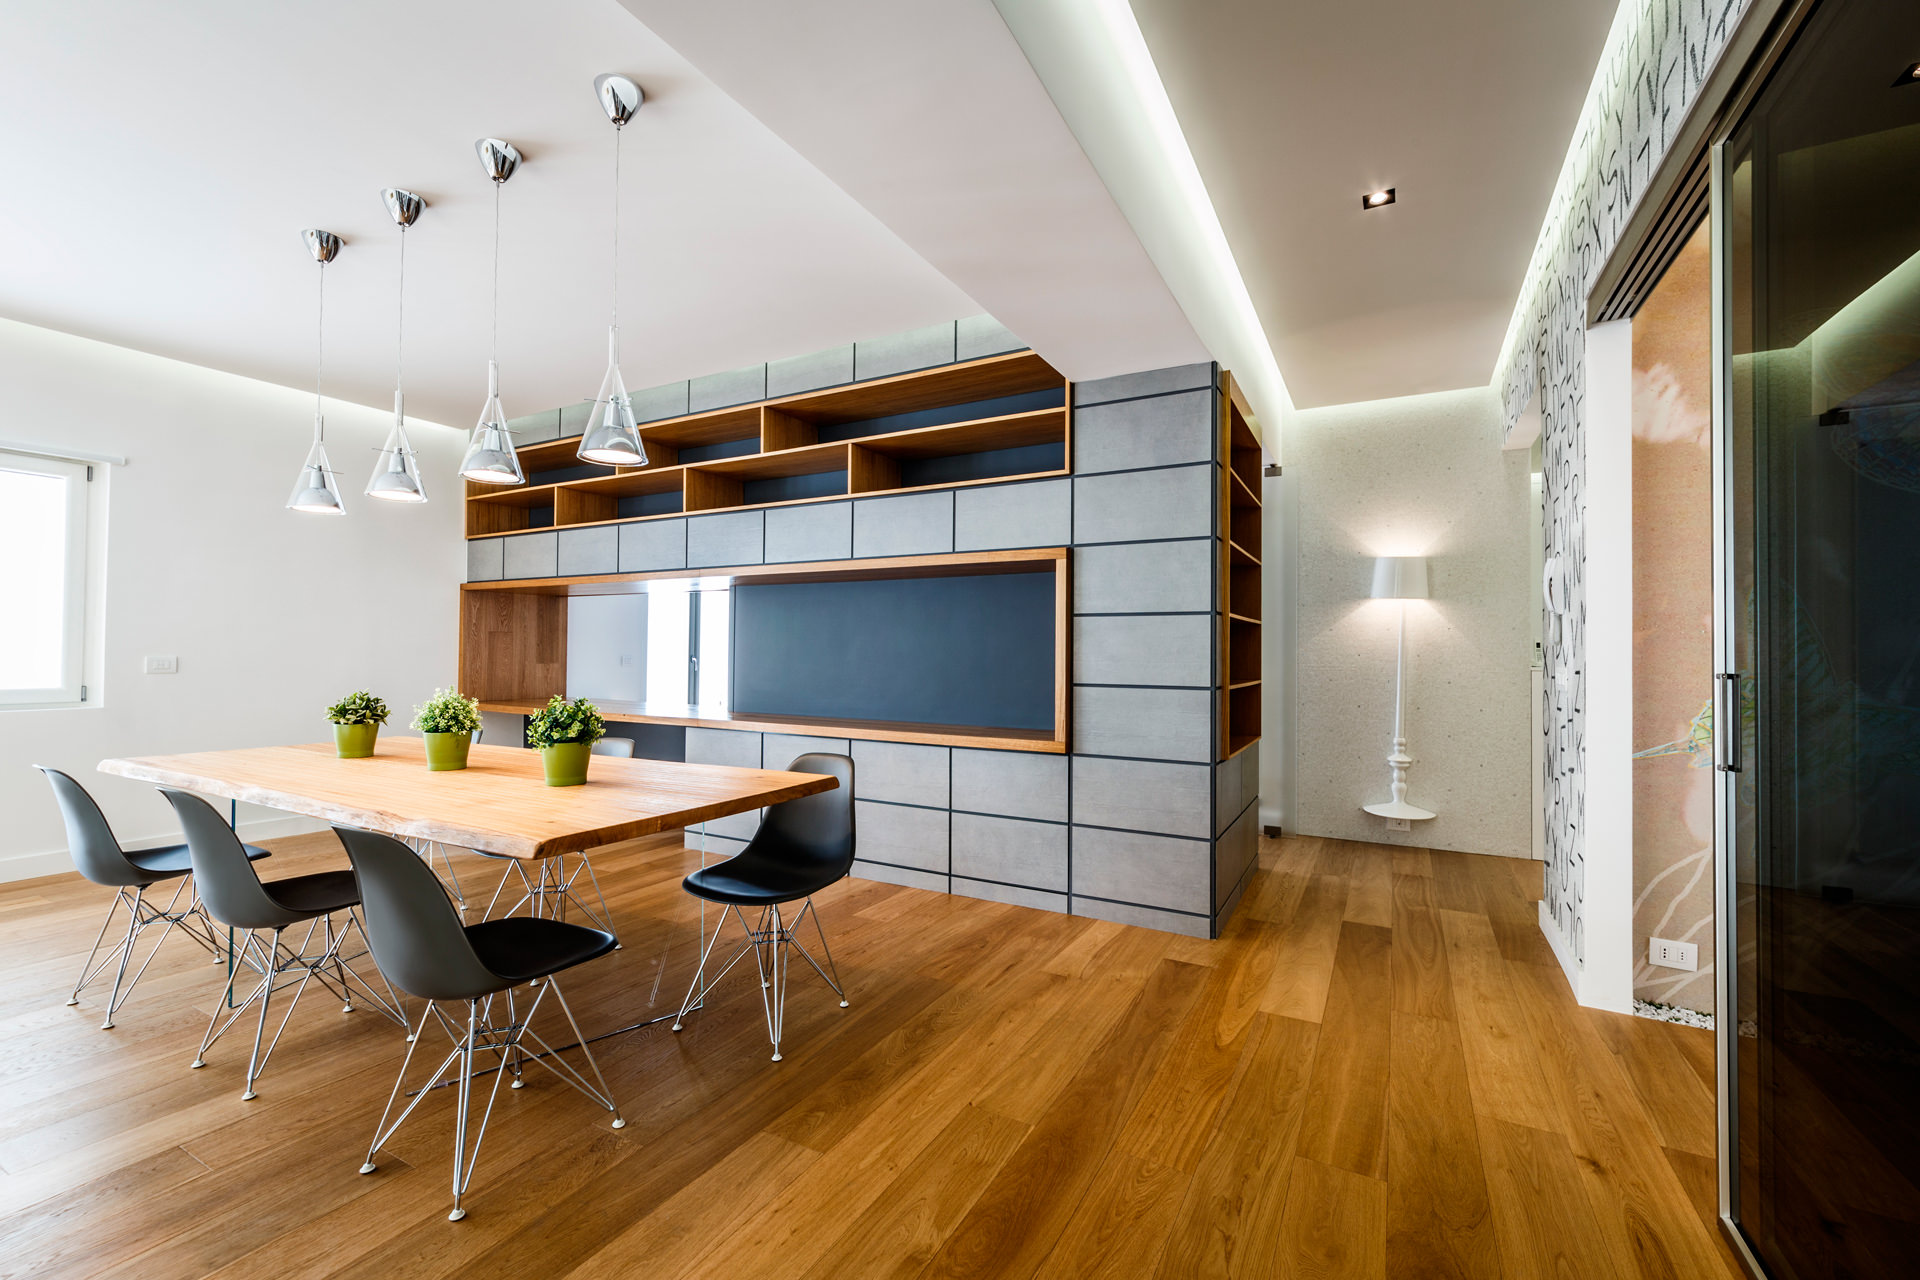 Monolithic Apartment with Predominant Wood Elements by Brain Factory-01